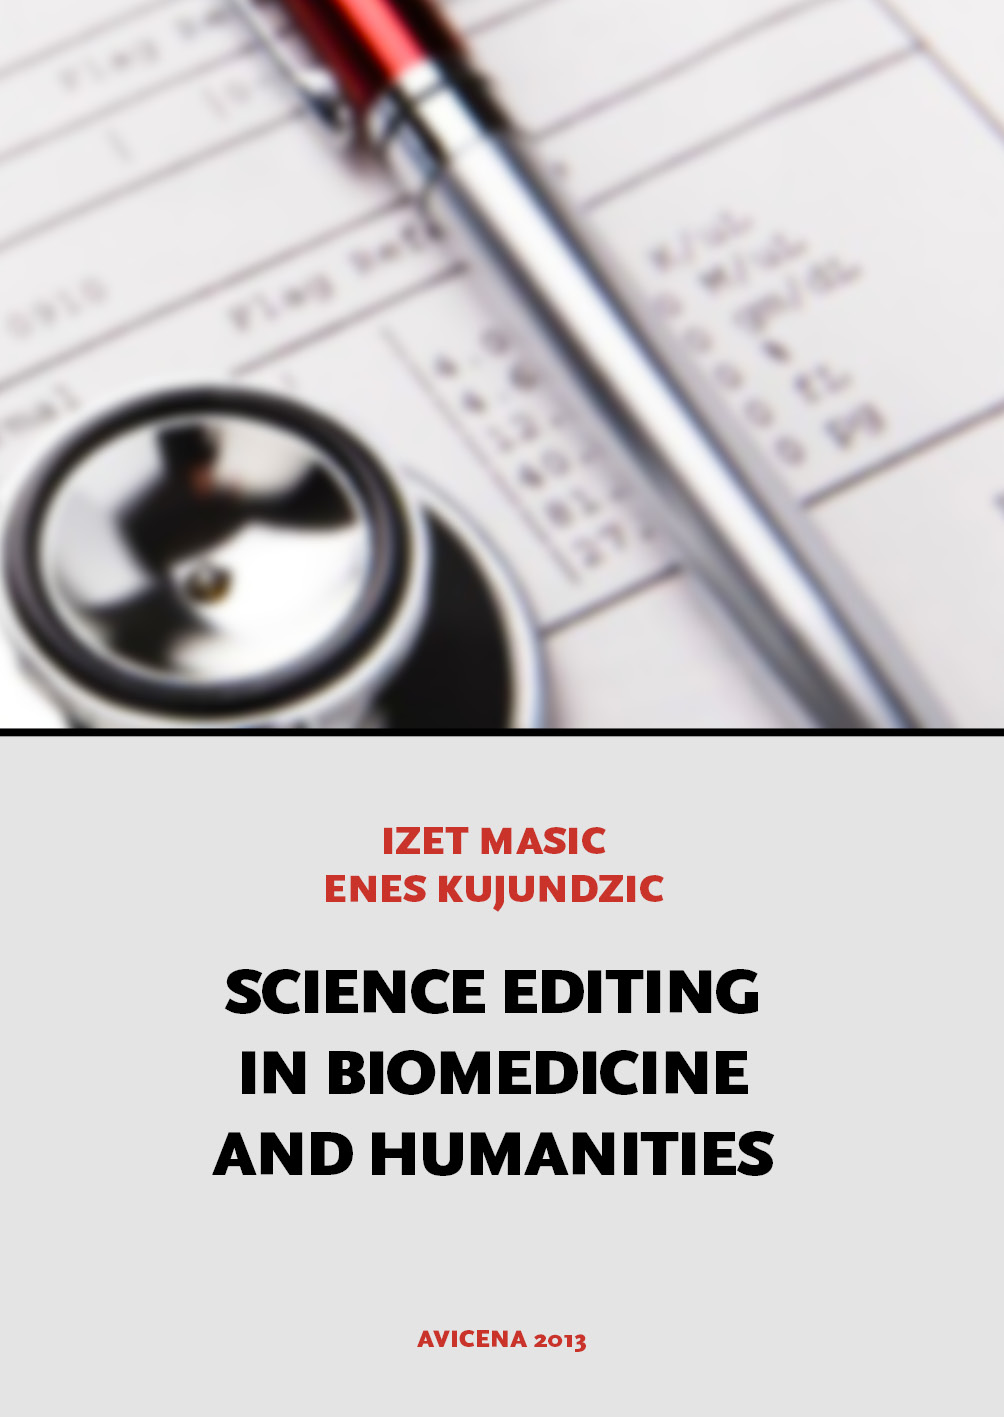 Science Editing in Biomedicine and Humanities